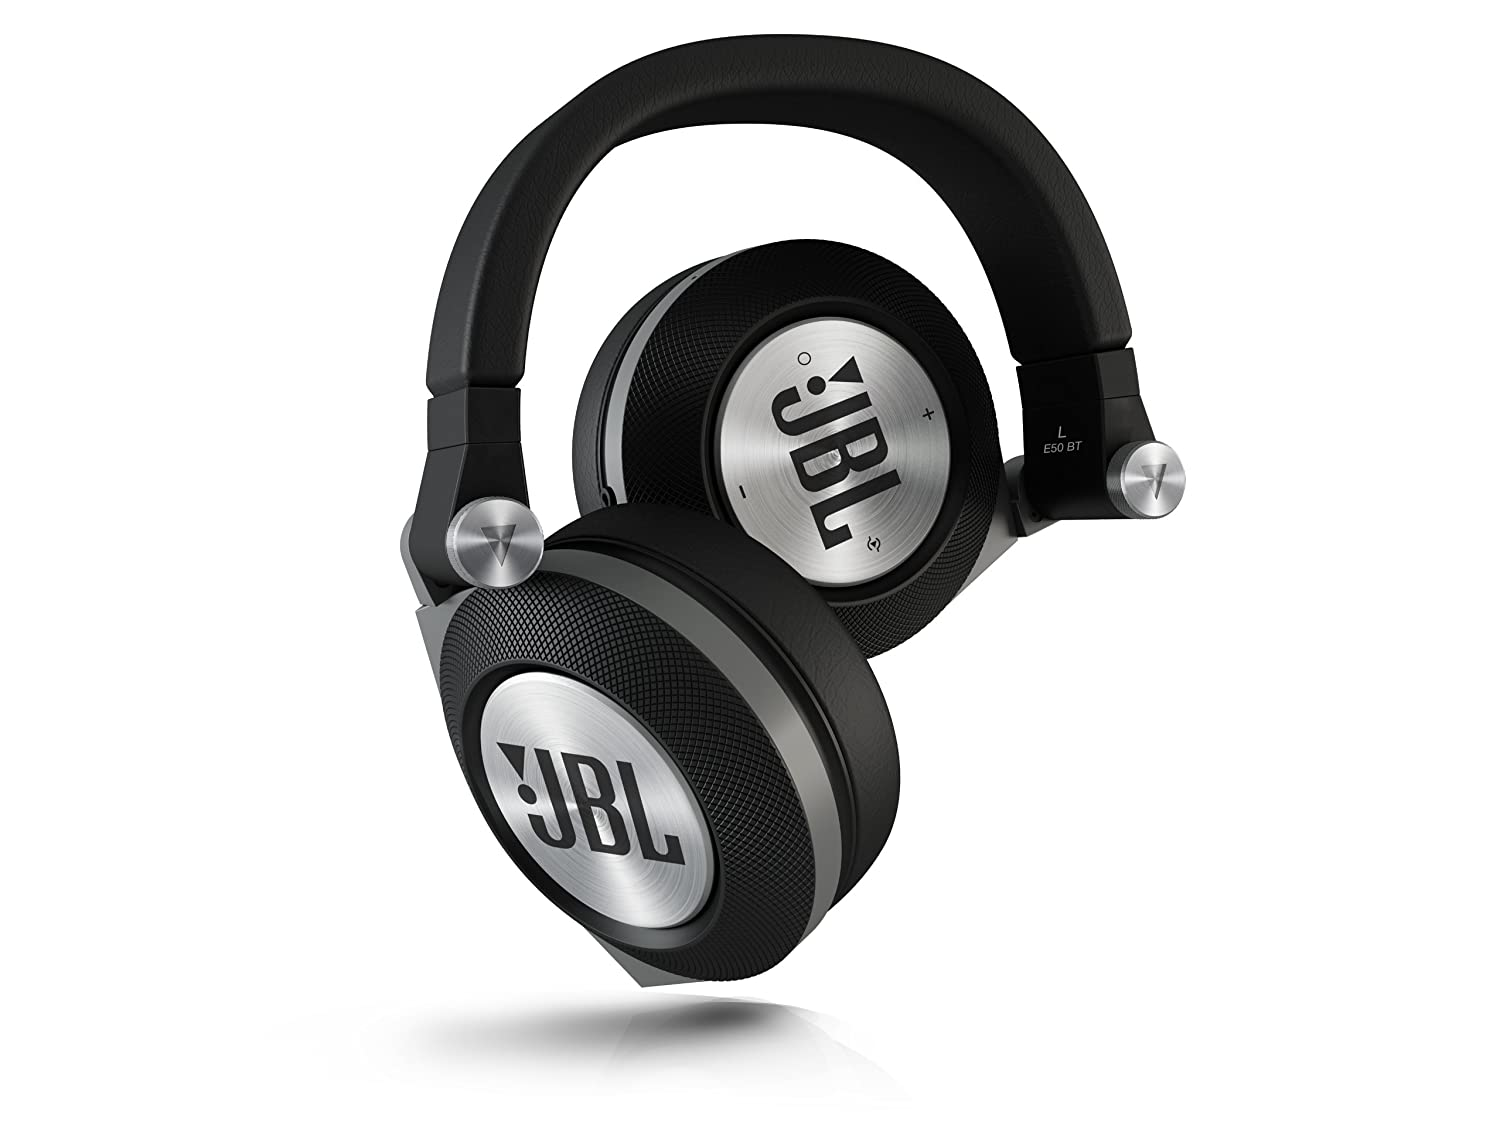 Jbl E50 Bt Wireless Rechargeable Soft Cushioned Over Ear Bluetooth